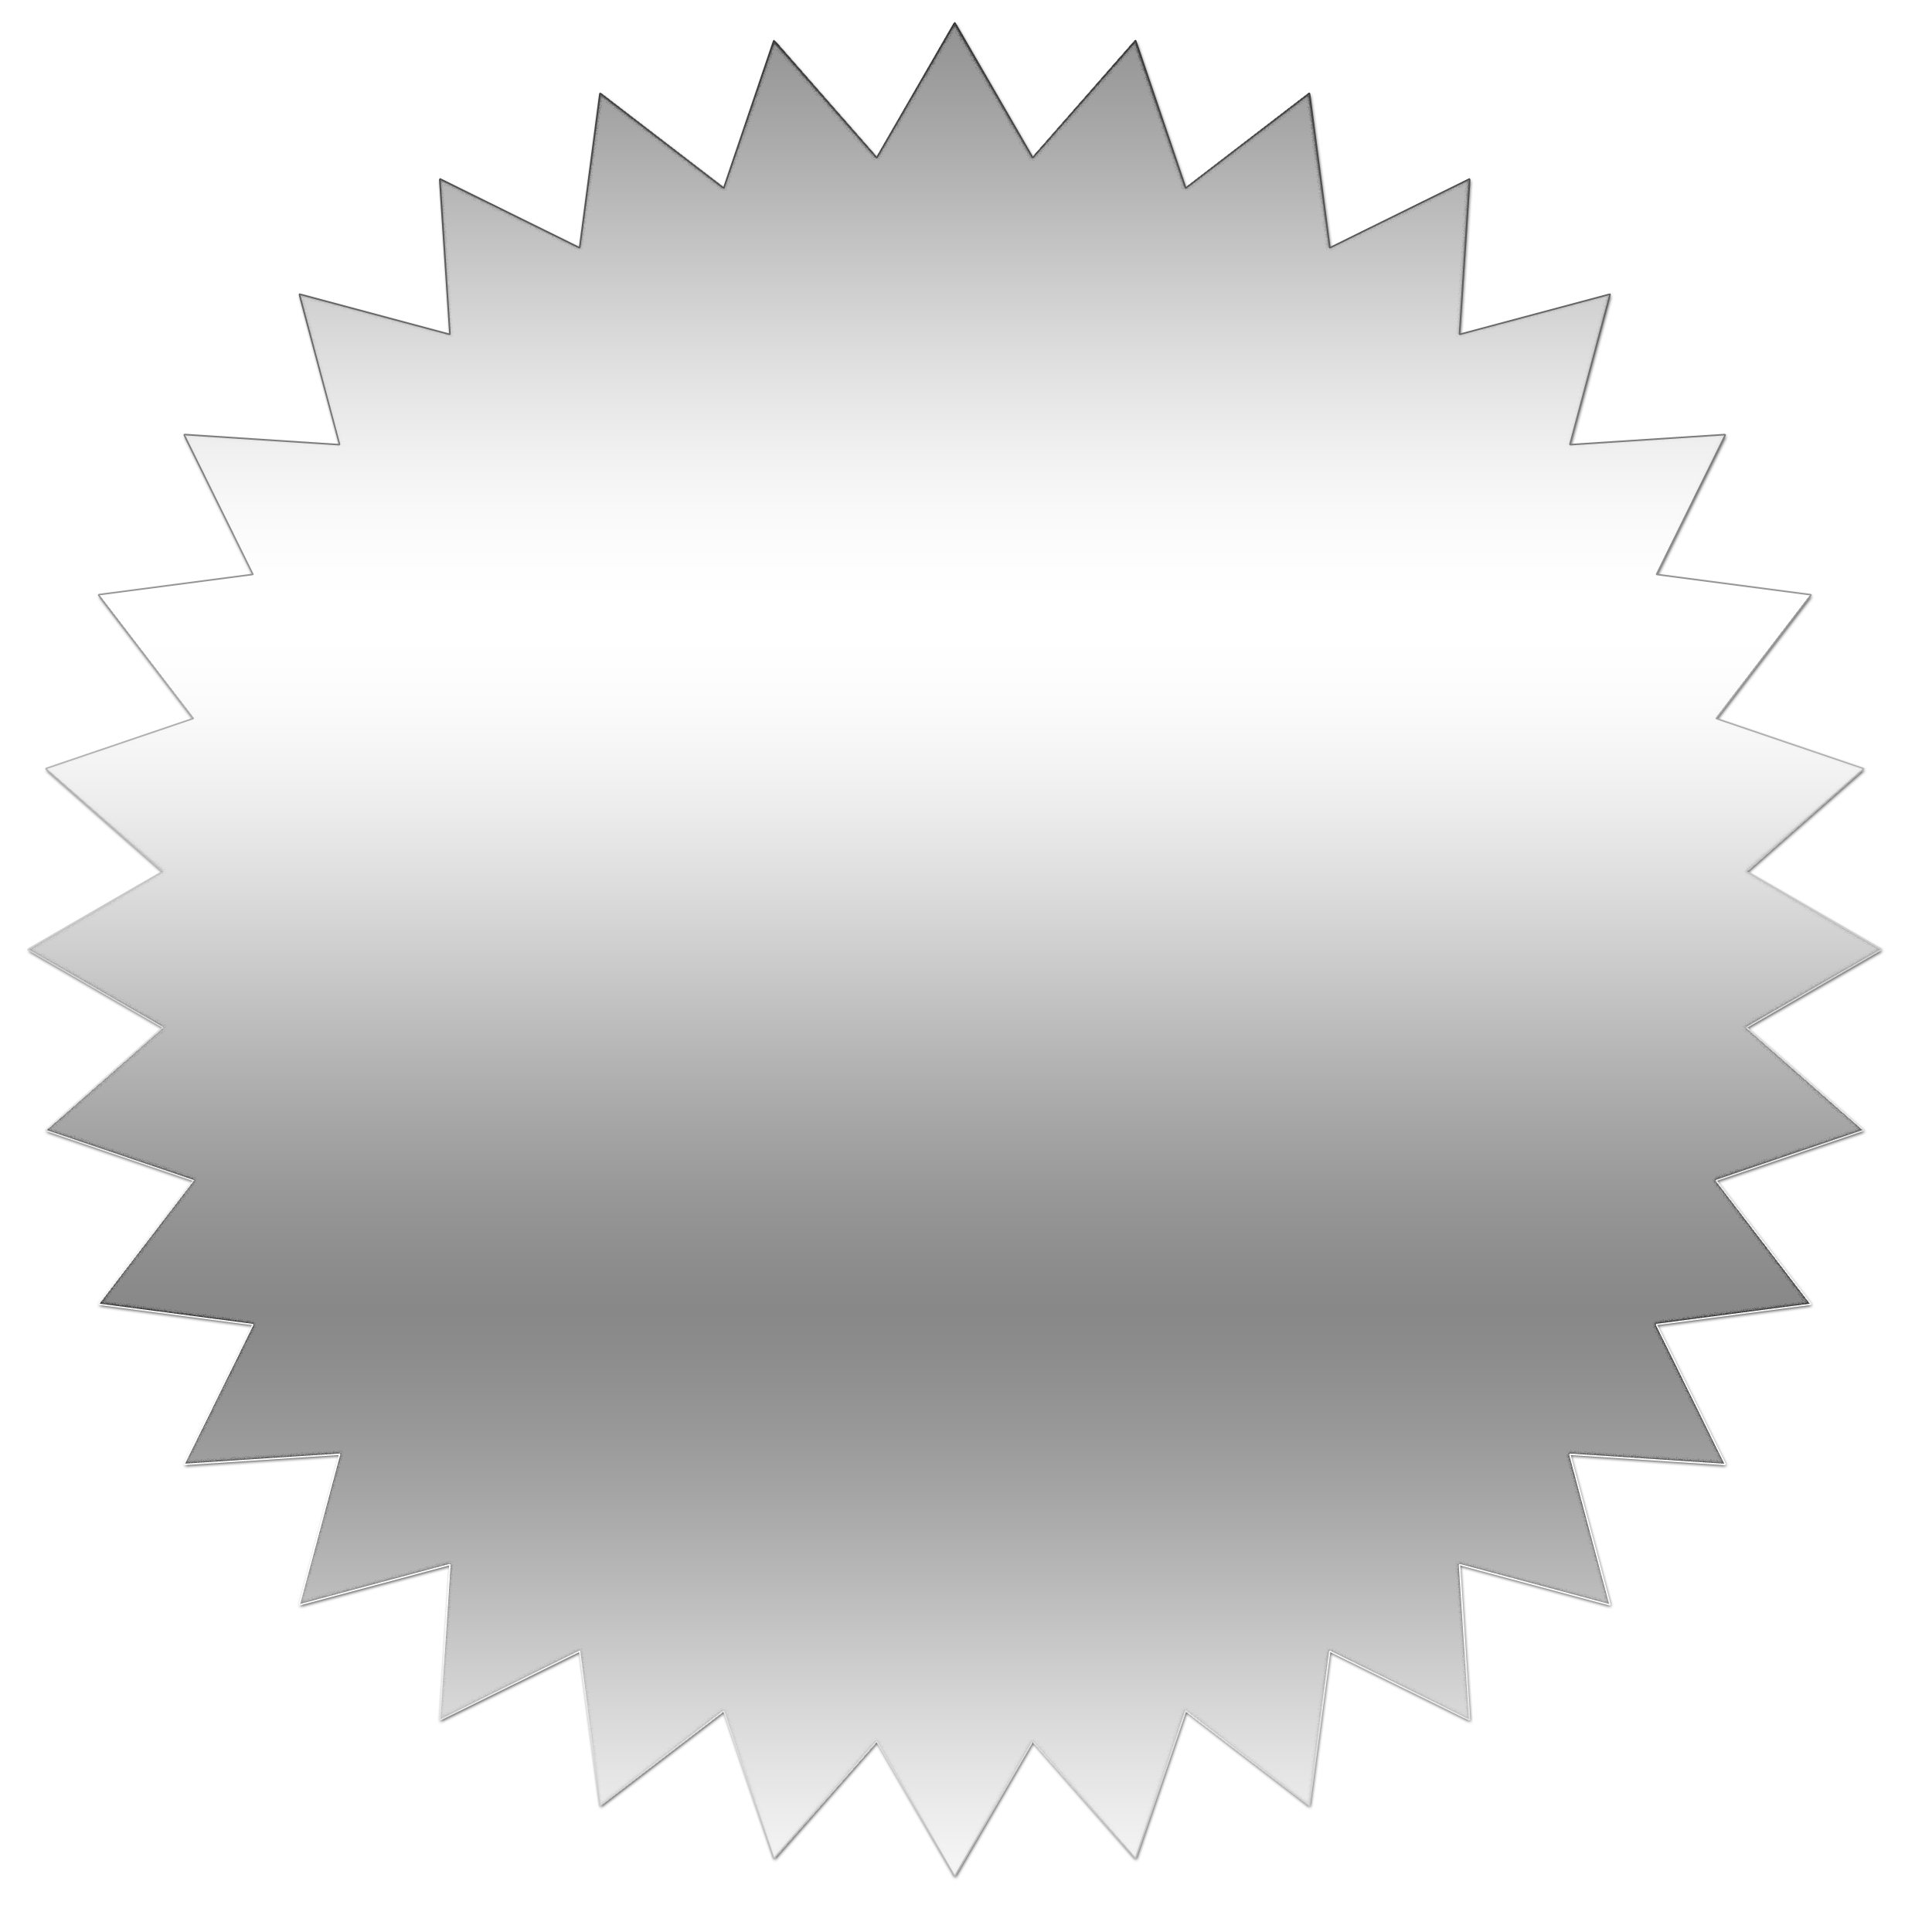 Clip Art Star with a Circle around It